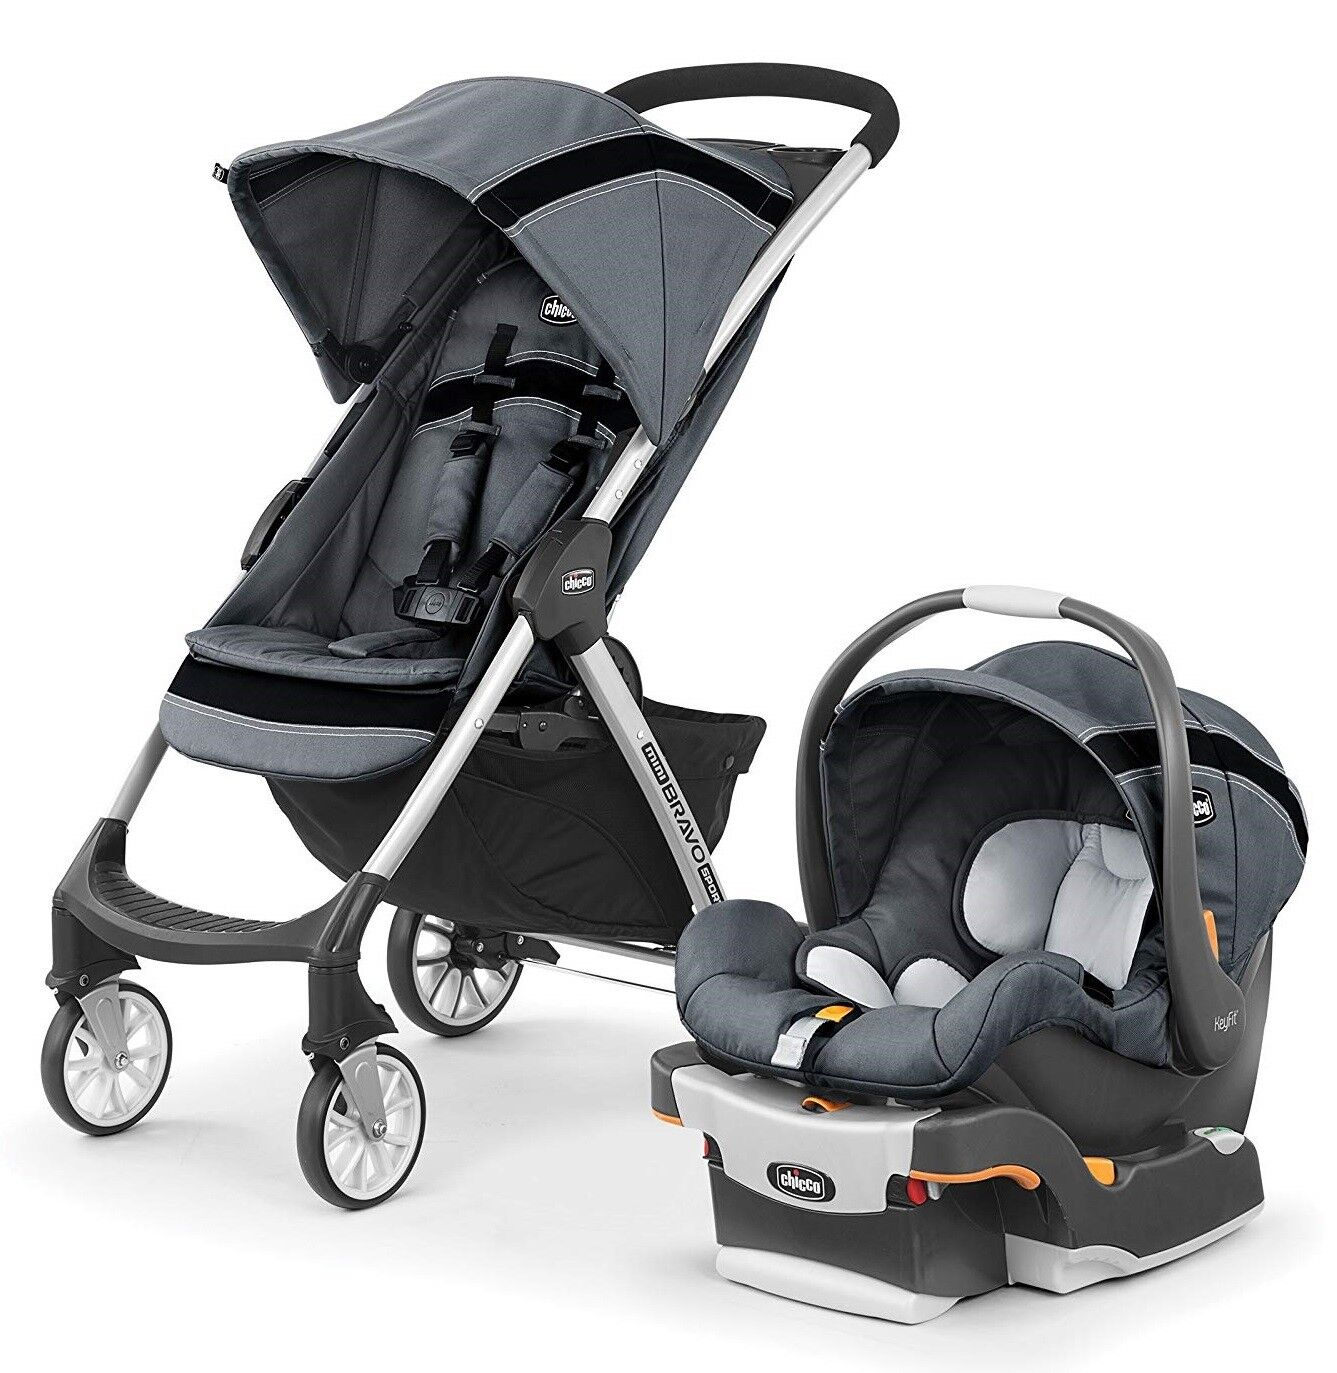 Stroller Travel System Ebay Chicco Mini Bravo Sport Baby Travel System Stroller W Keyfit Car Seat Carbon